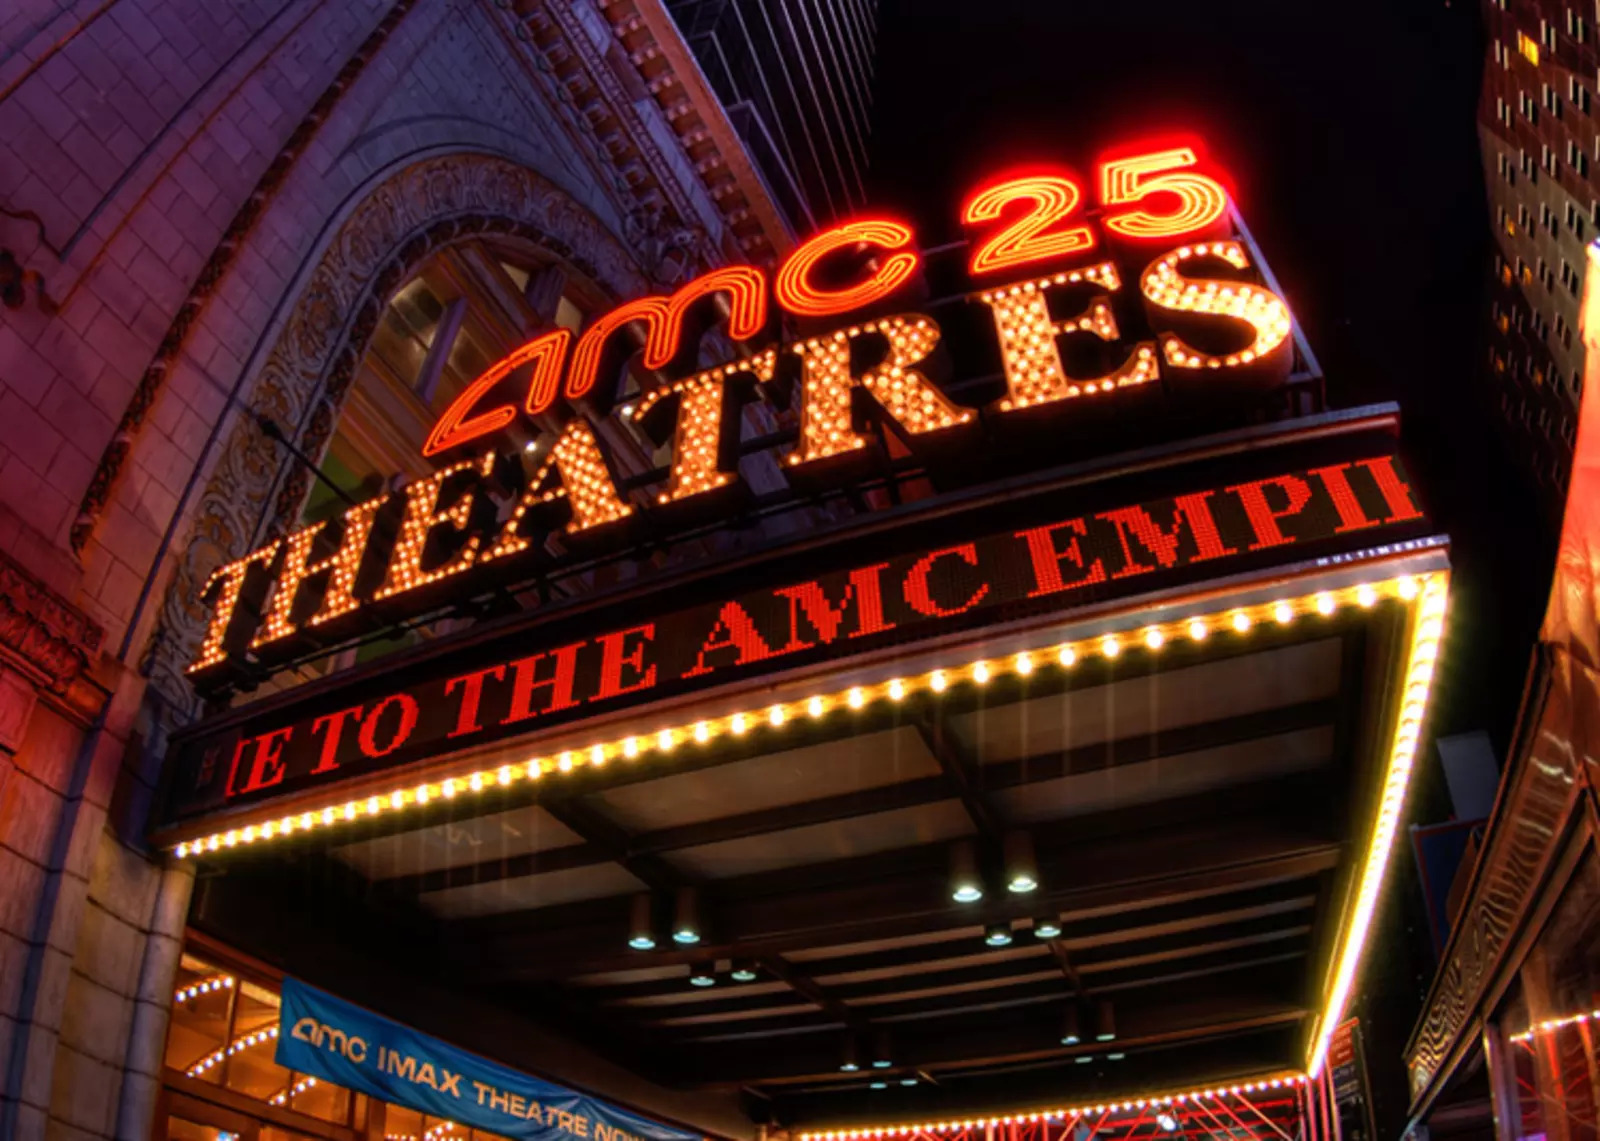 Amc Theatres Reopens Its Doors On August 20 By Celebrating 100 Years Of Operations With Movies In 2020 At 1920 Prices Celluloid Junkie 06.11.2020 · amc southcenter 16. amc theatres reopens its doors on